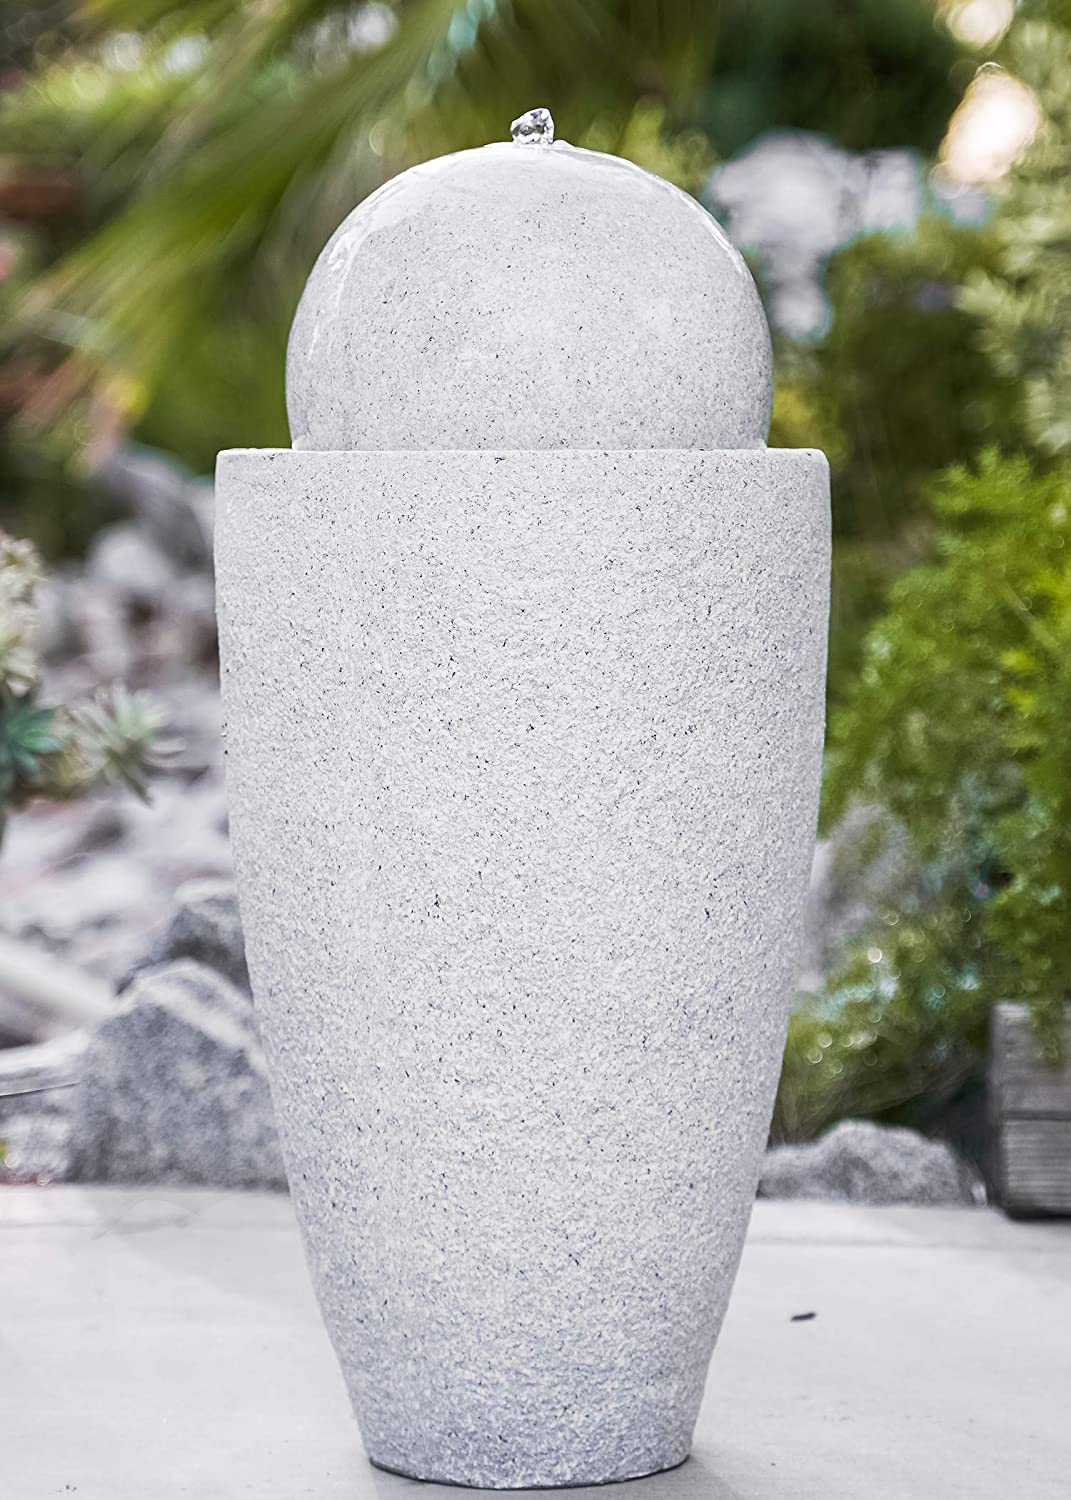 XBrand GE2612FTGR Modern Stone Textured Round Sphere Water Fountain w/LED Lights, Indoor Outdoor Décor, 25.6 Inch Tall, Grey